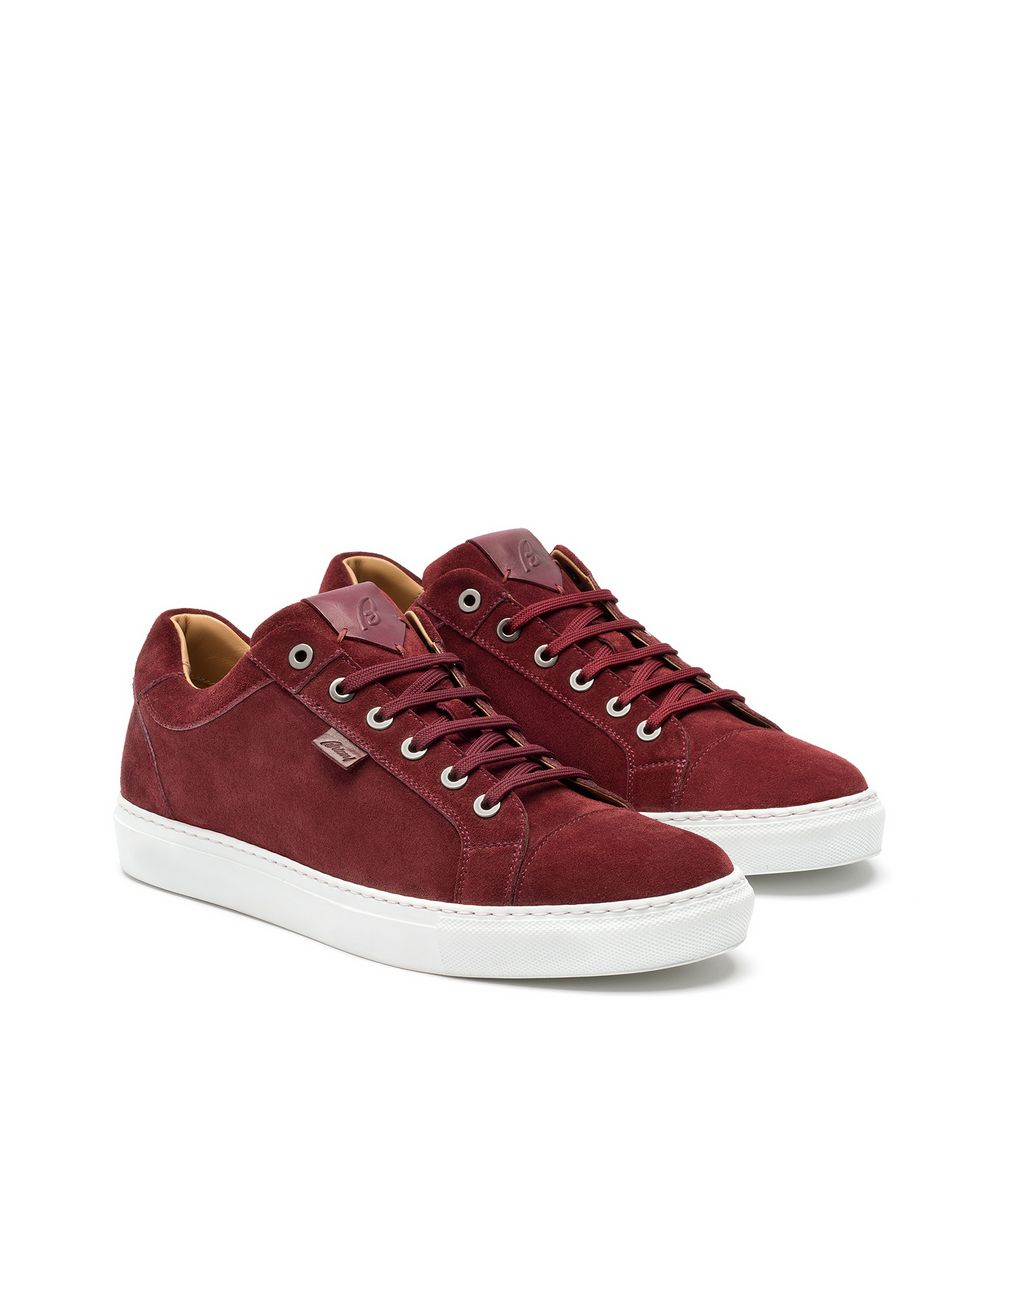 BRIONI Basket bordeaux en veau velours Sneaker [*** pickupInStoreShippingNotGuaranteed_info ***] d